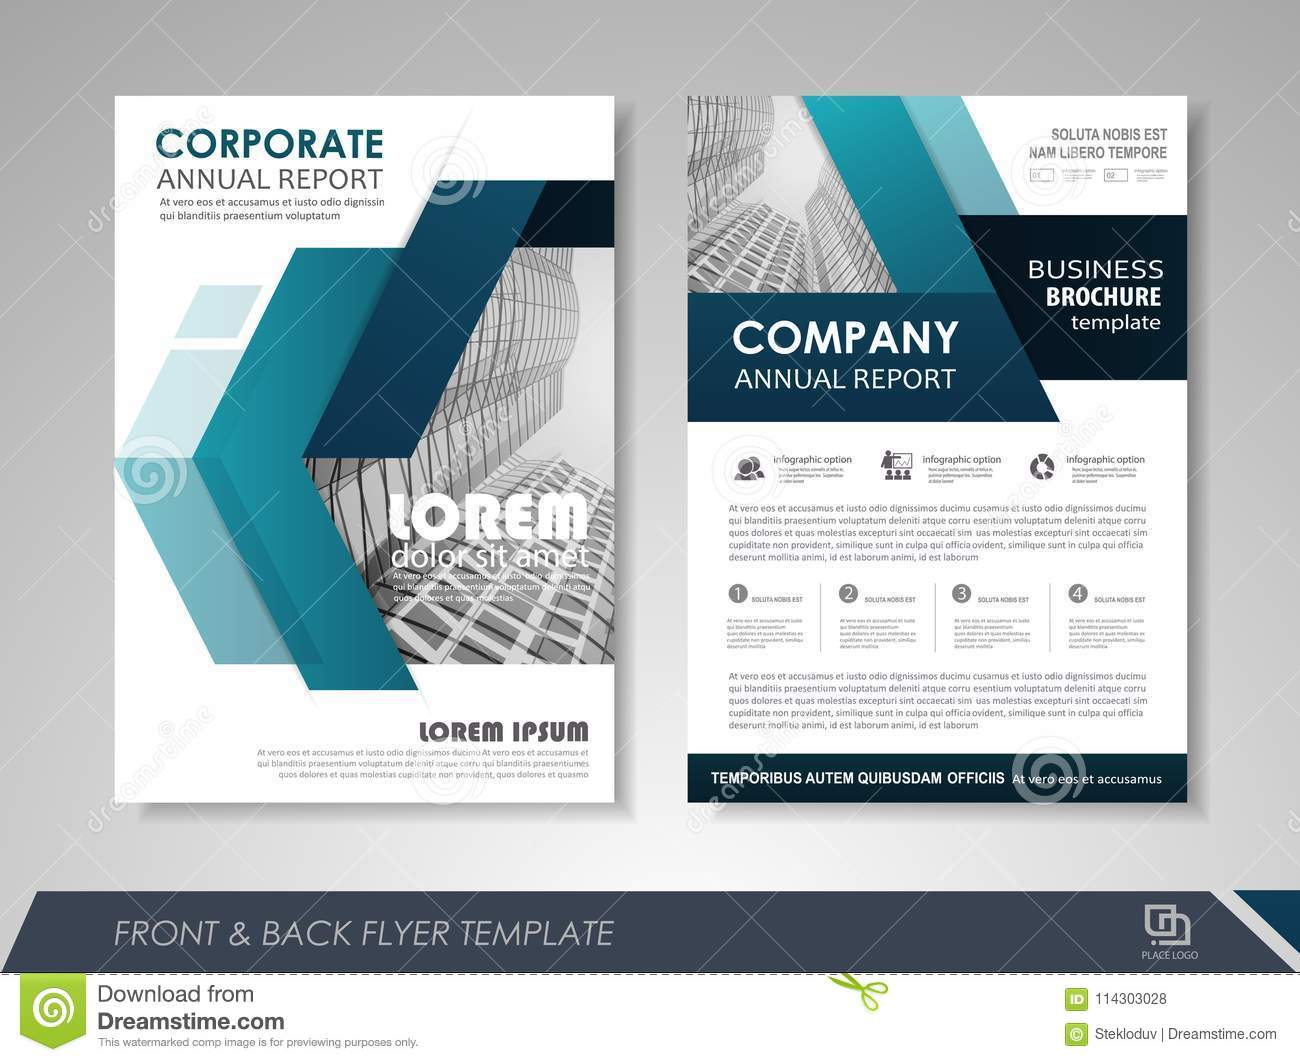 Business Poster Template from thumbs.dreamstime.com